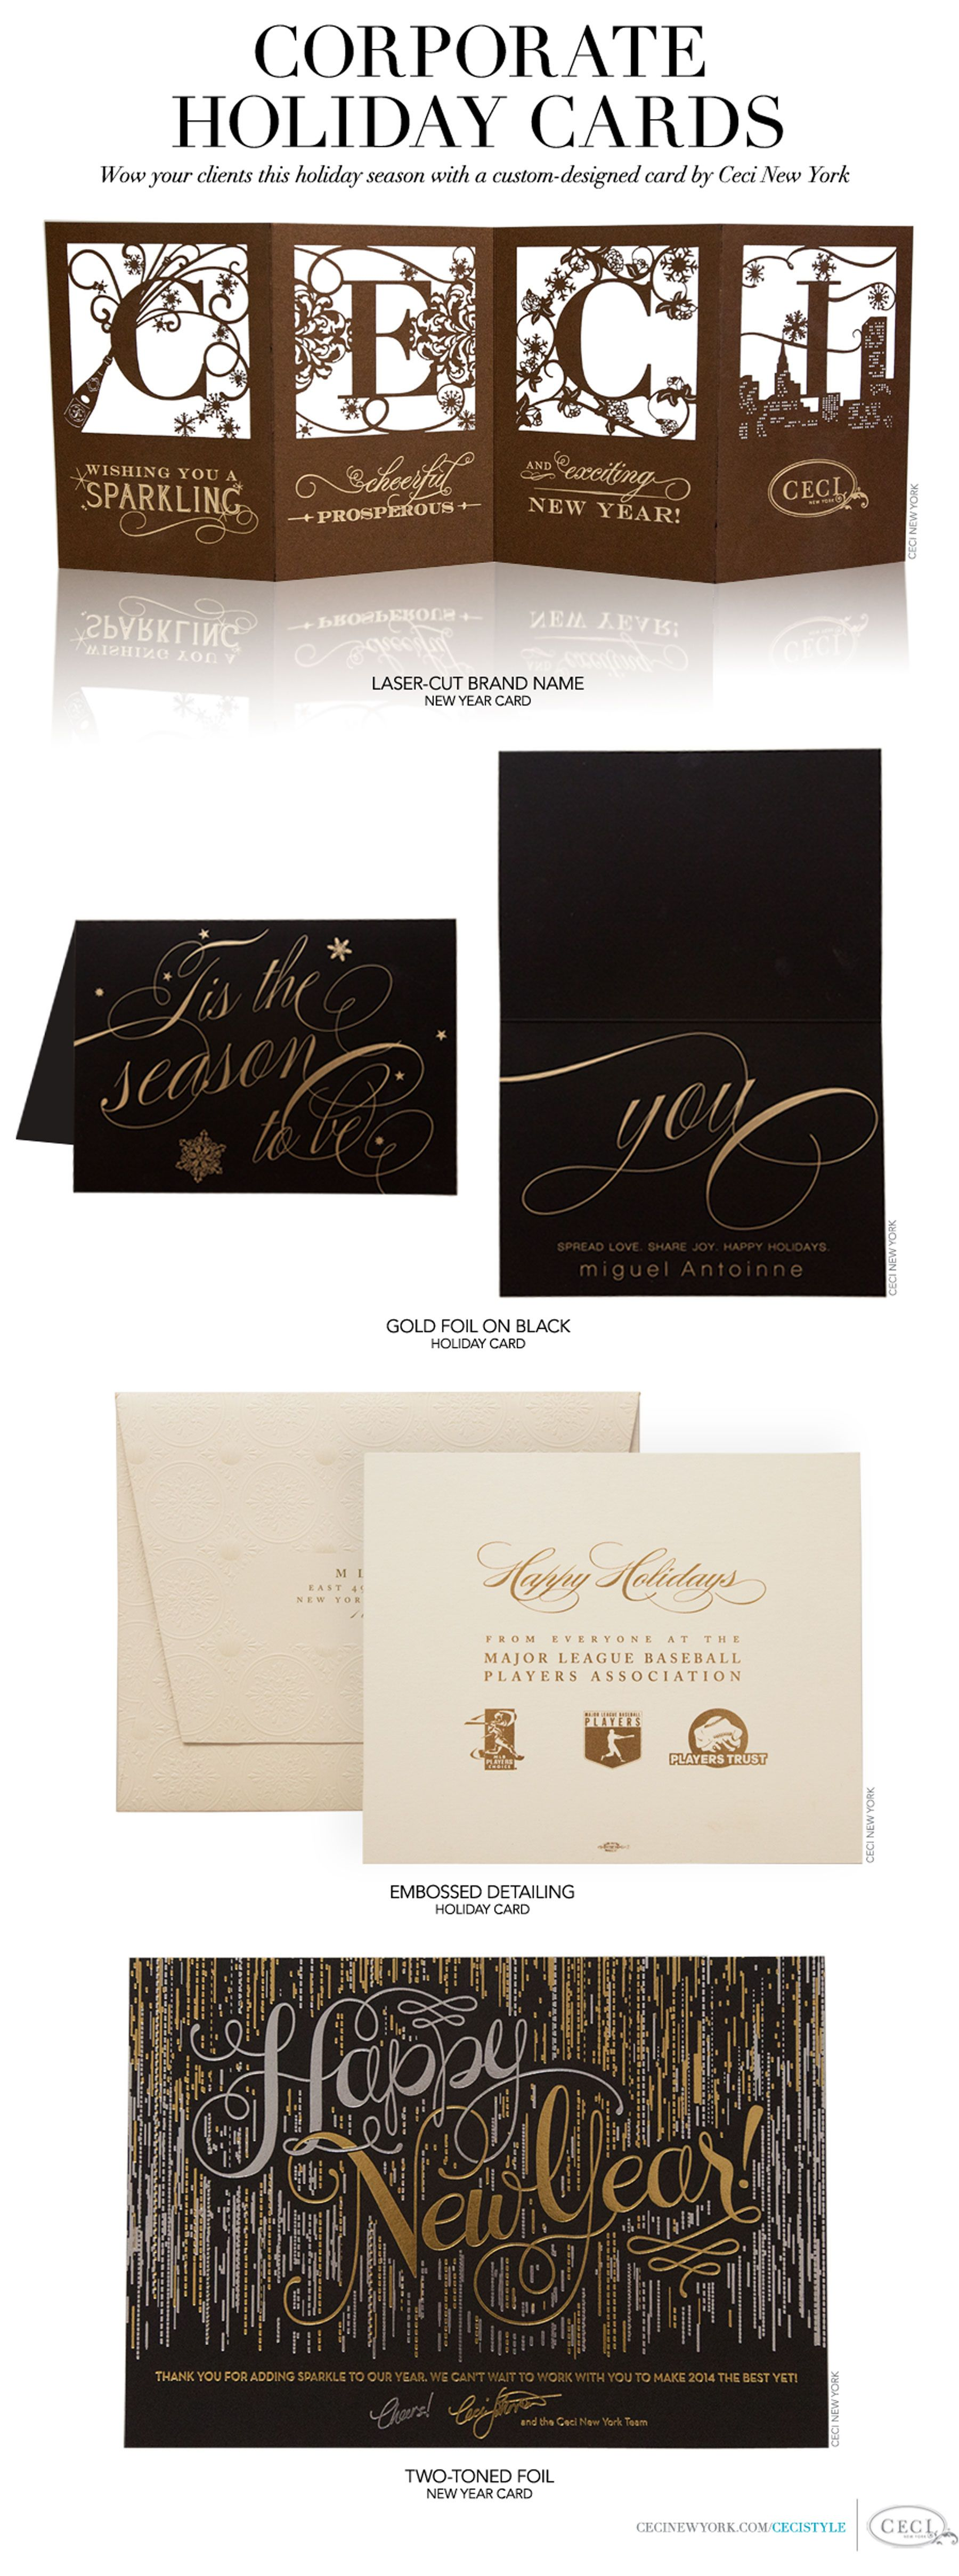 Luxury Wedding Invitations by Ceci New York - Our Muse - Custom ...